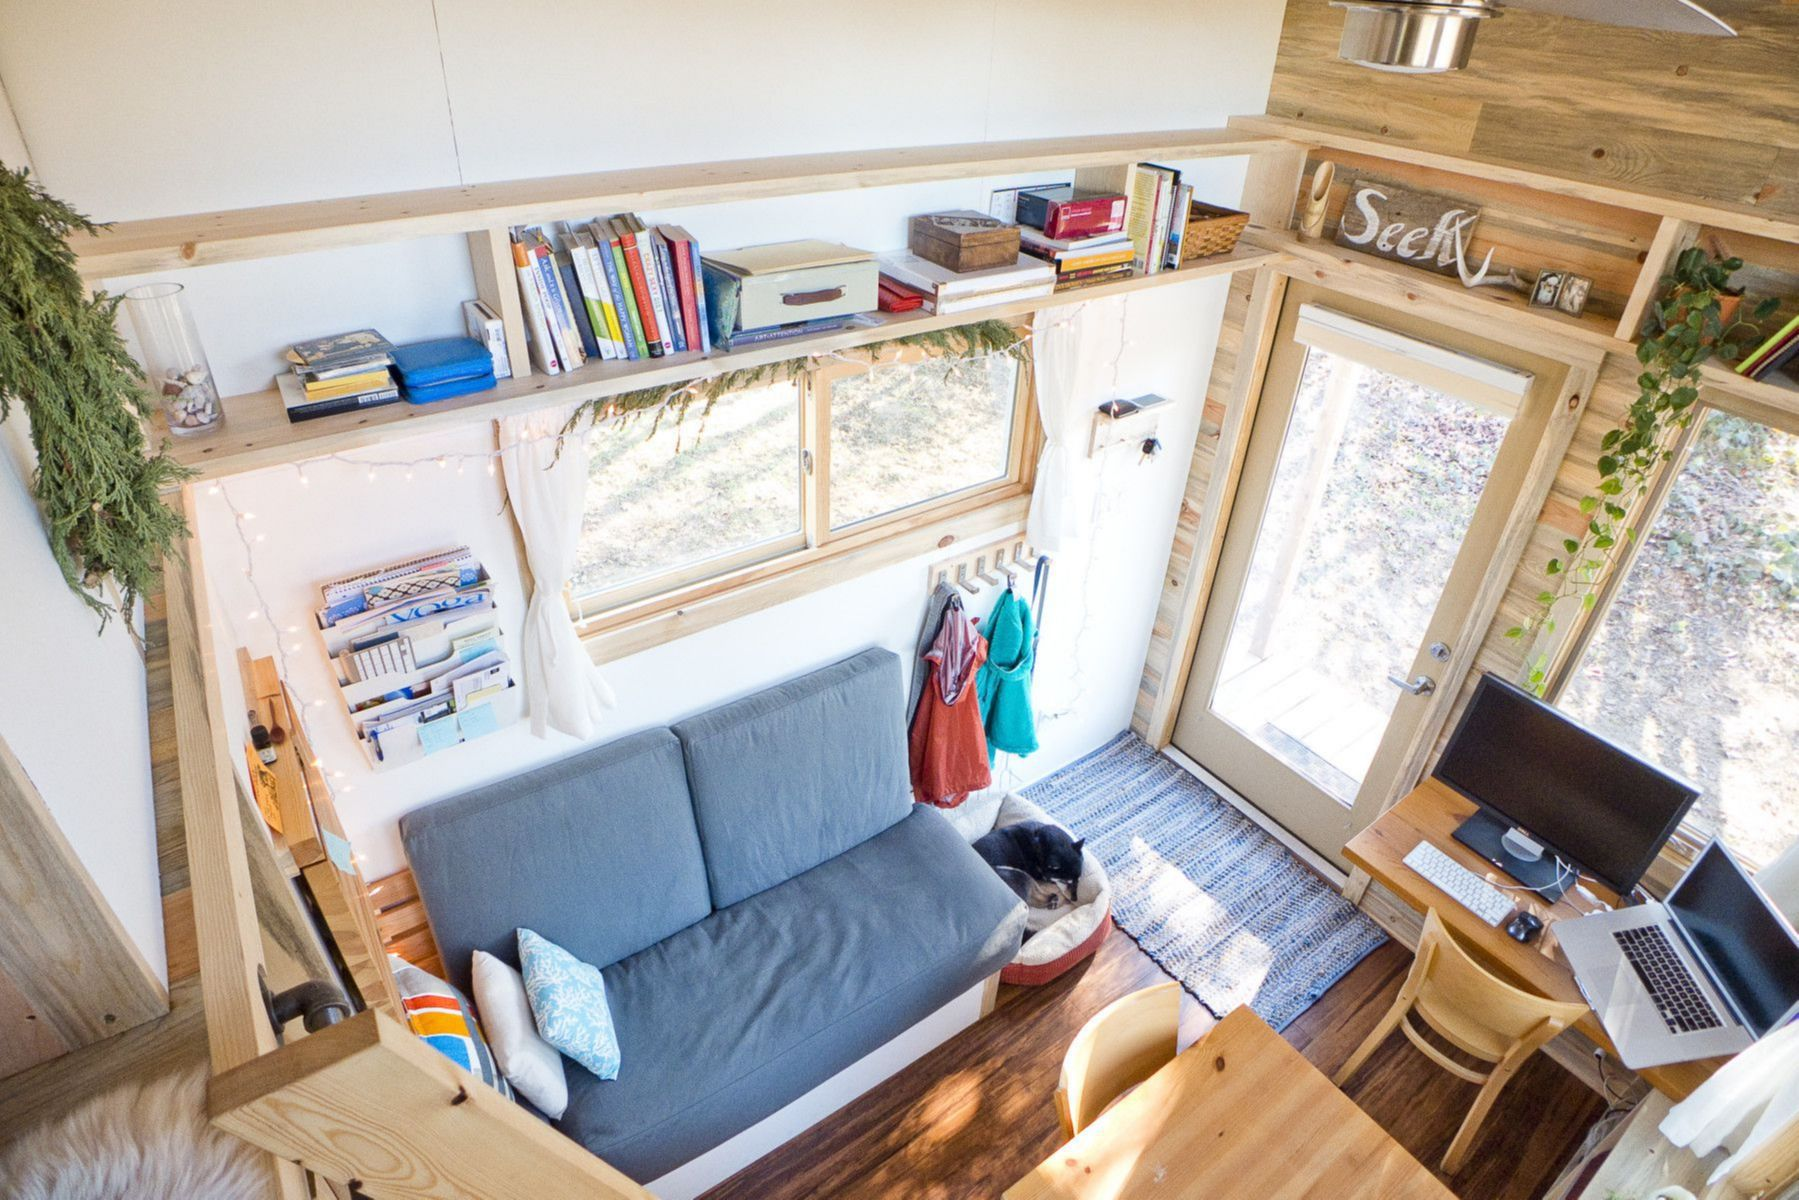 Largest Tiny House largest tiny house on wheels 139 decorating photos in largest tiny house on wheels Largest Tiny House Bedroom And Living Room Image Collections